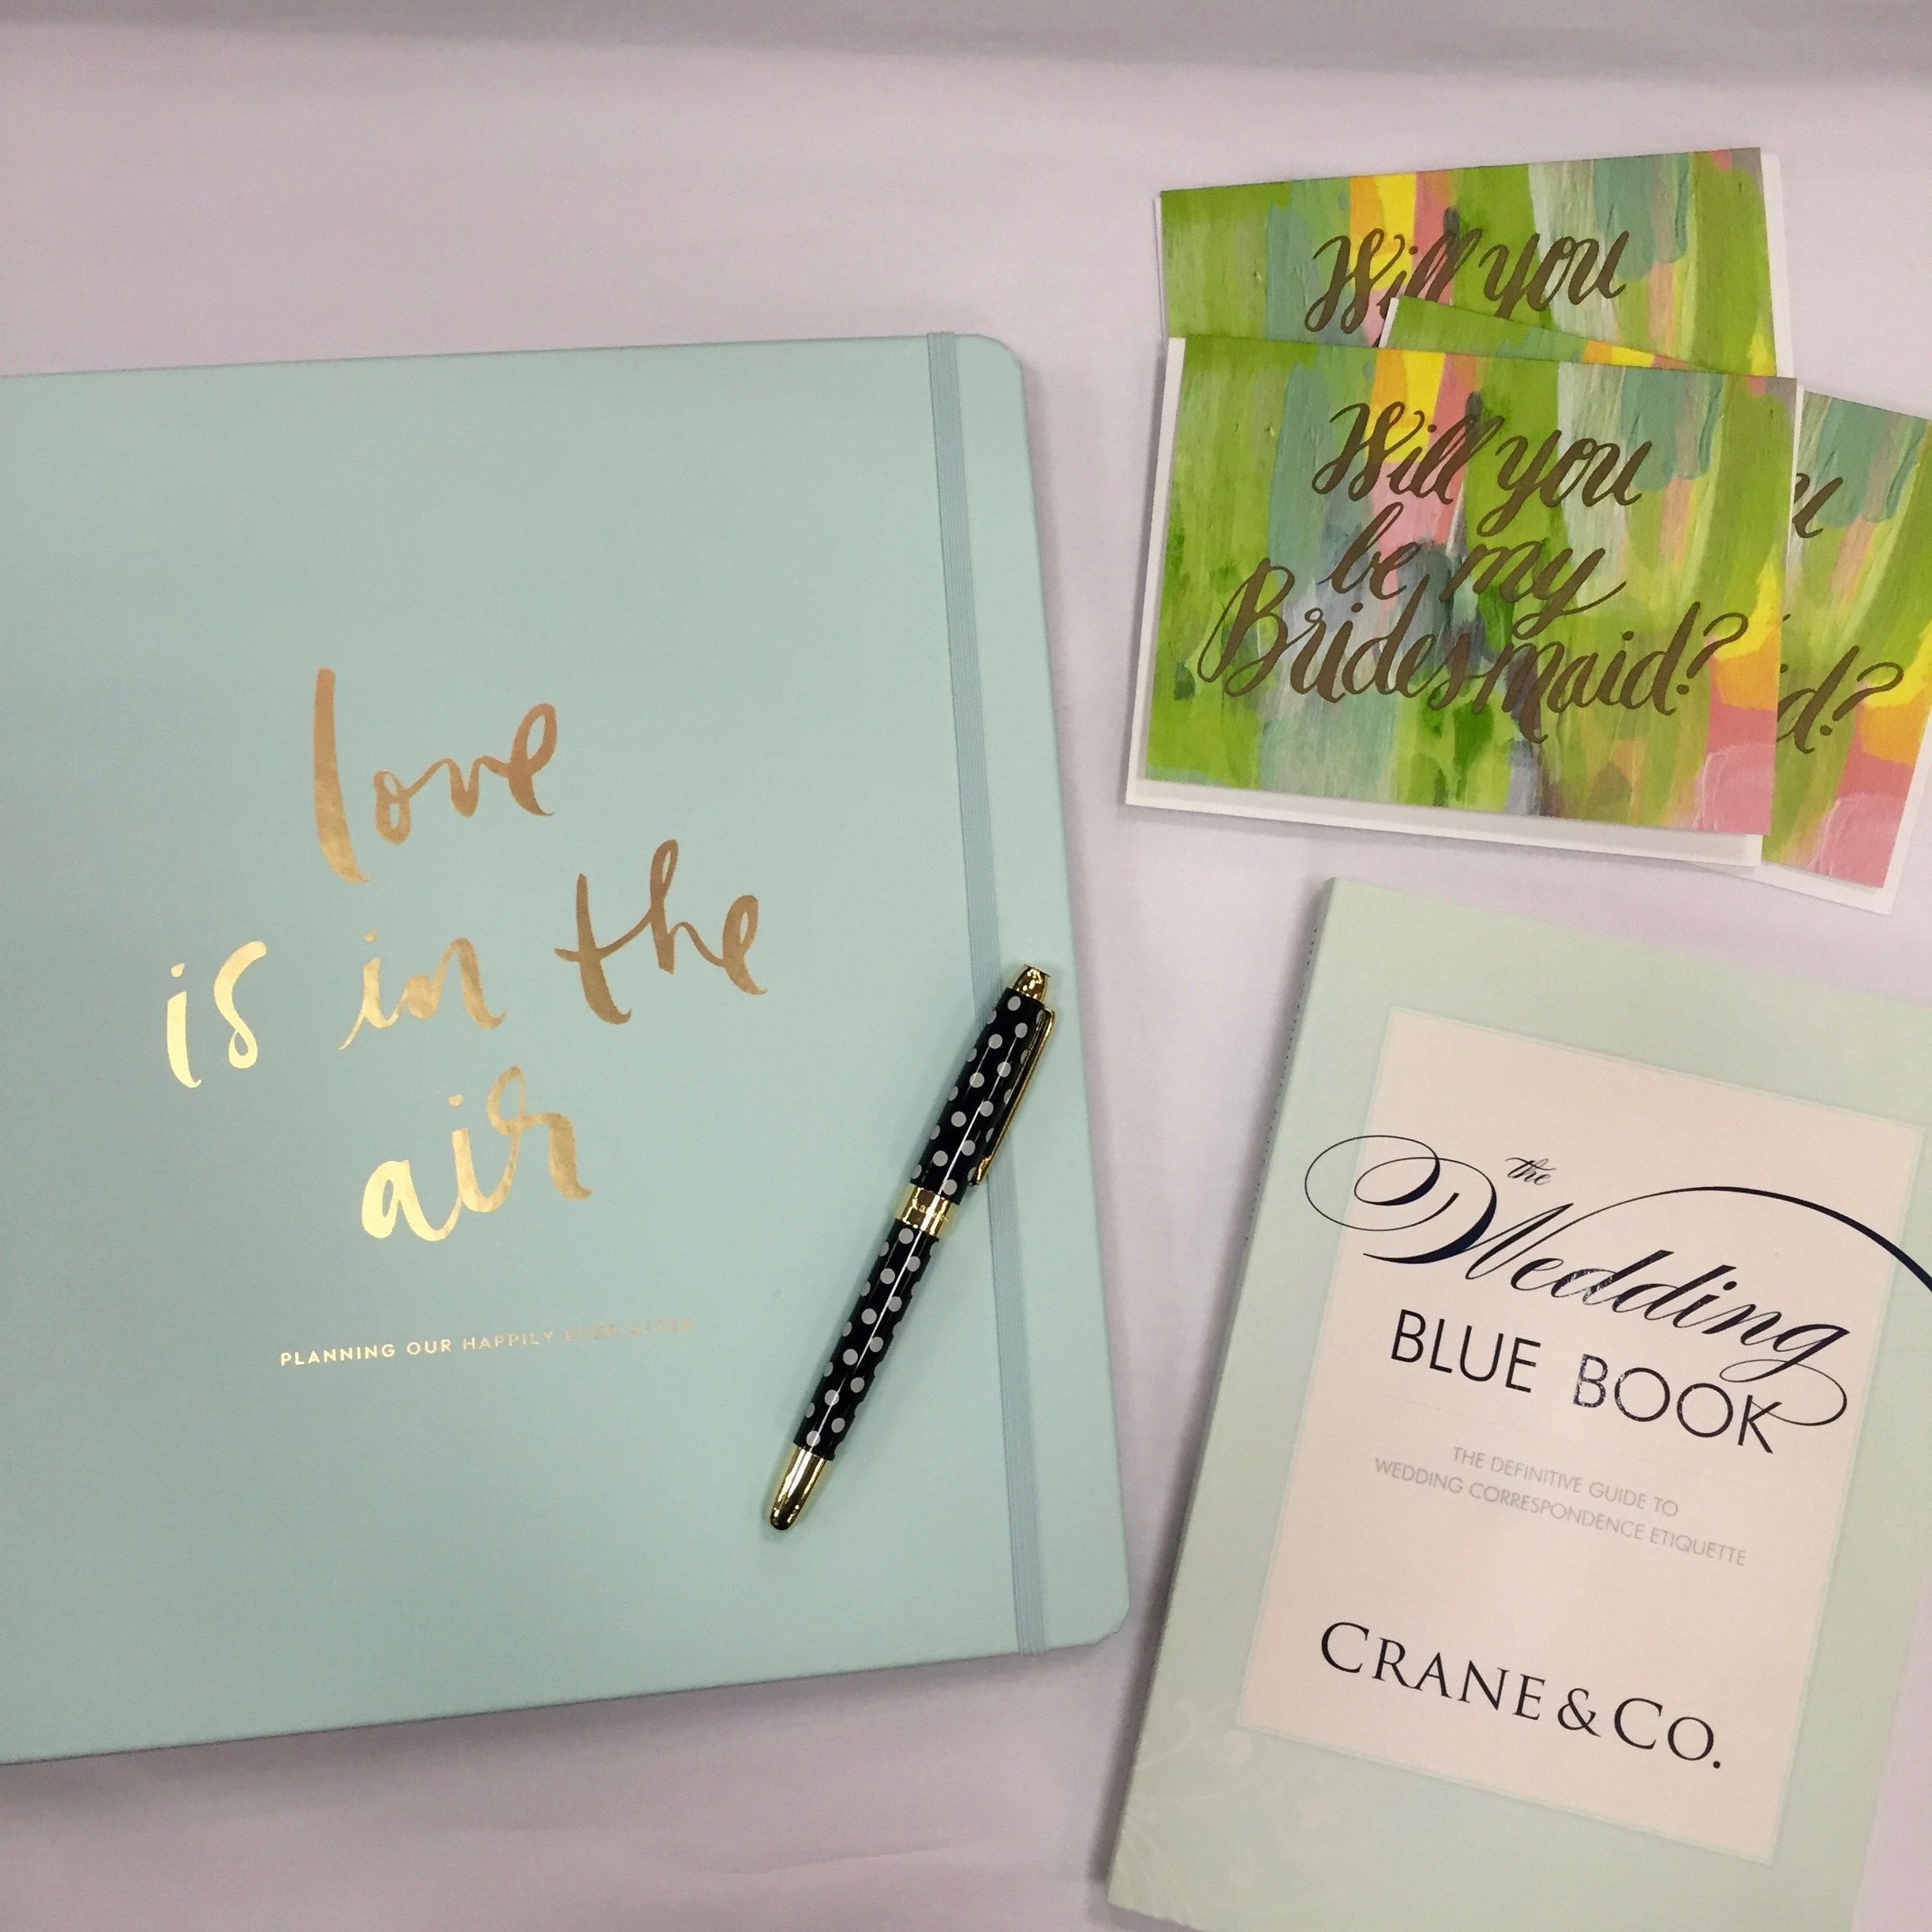 Get ready for wedding planning with this kate spade